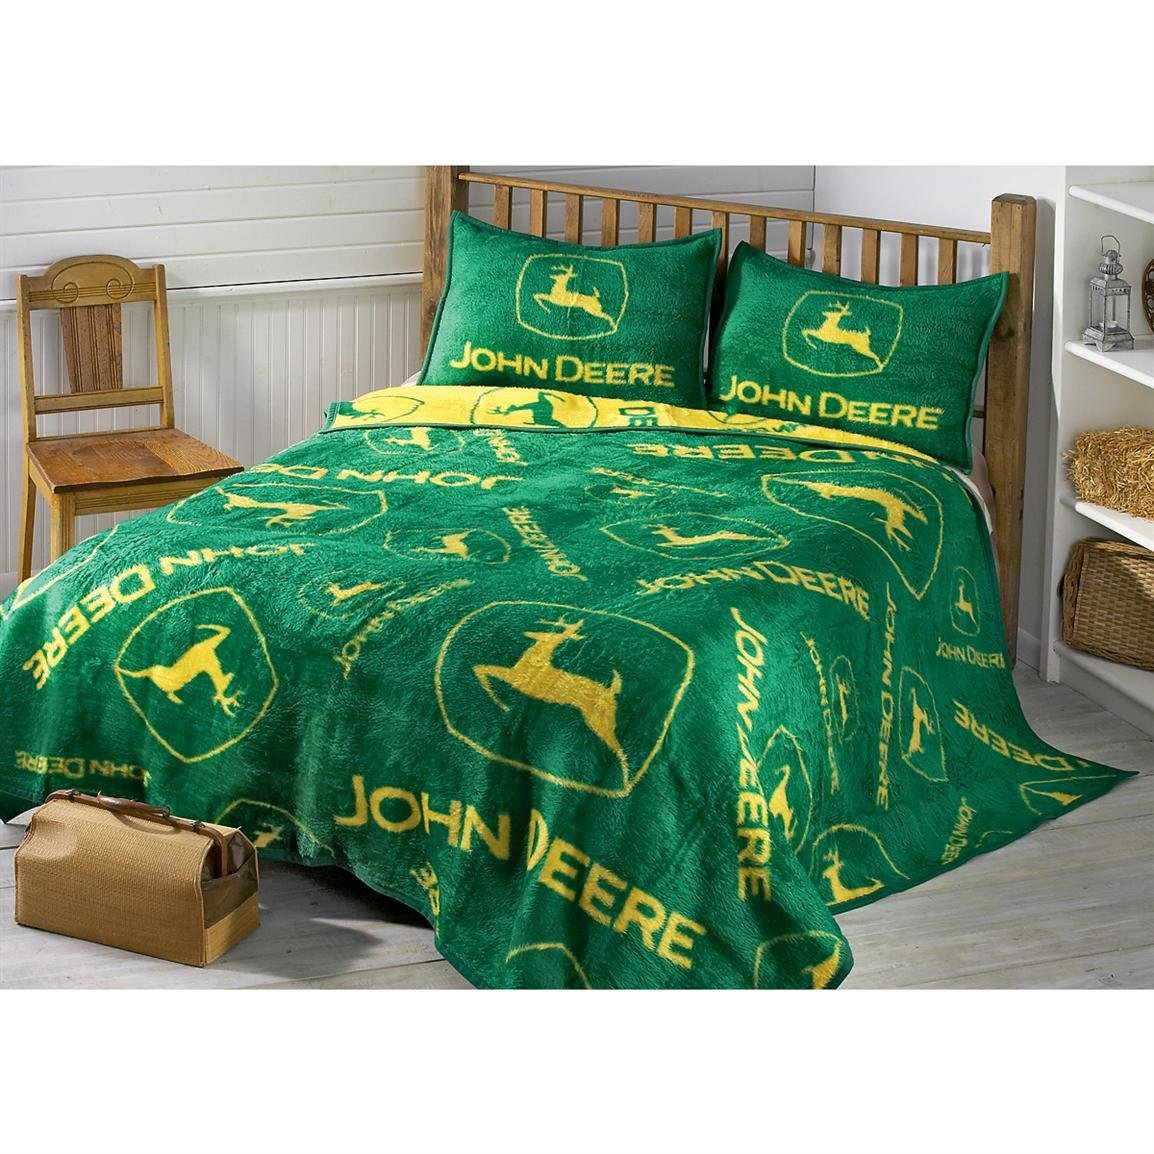 Best John Deere® Logos Sham 77738 Quilts At Sportsman S Guide With Pictures